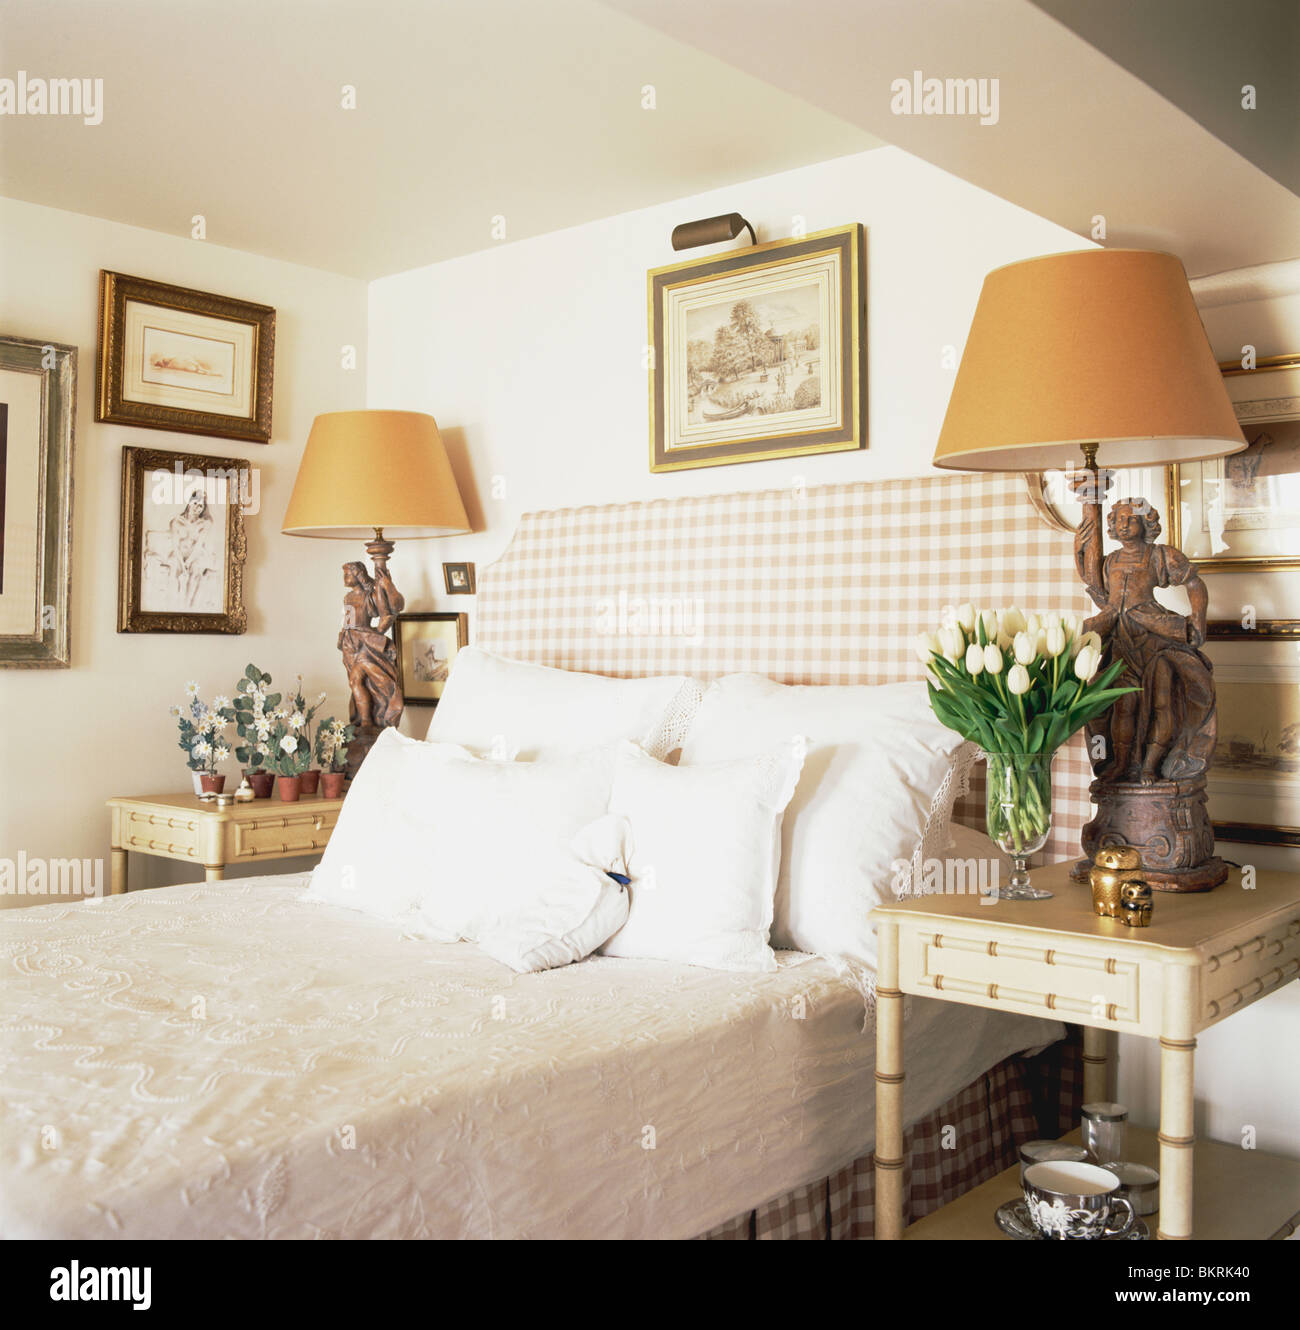 White pillows against checked headboard on bed in small cottage bedroom  with orange lamps on tables on either side of bed